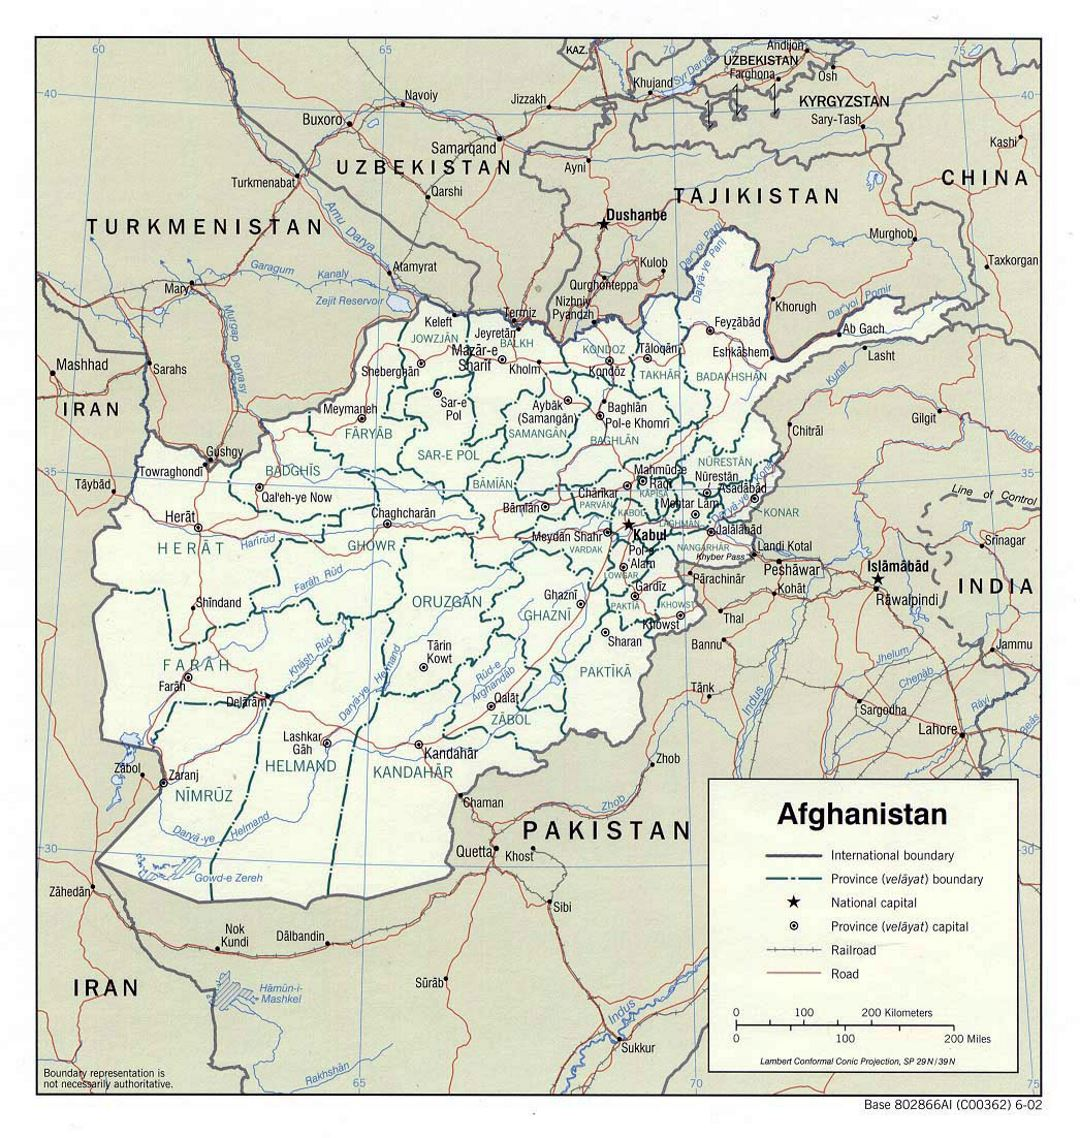 Detailed political and administrative map of Afghanistan - 2002